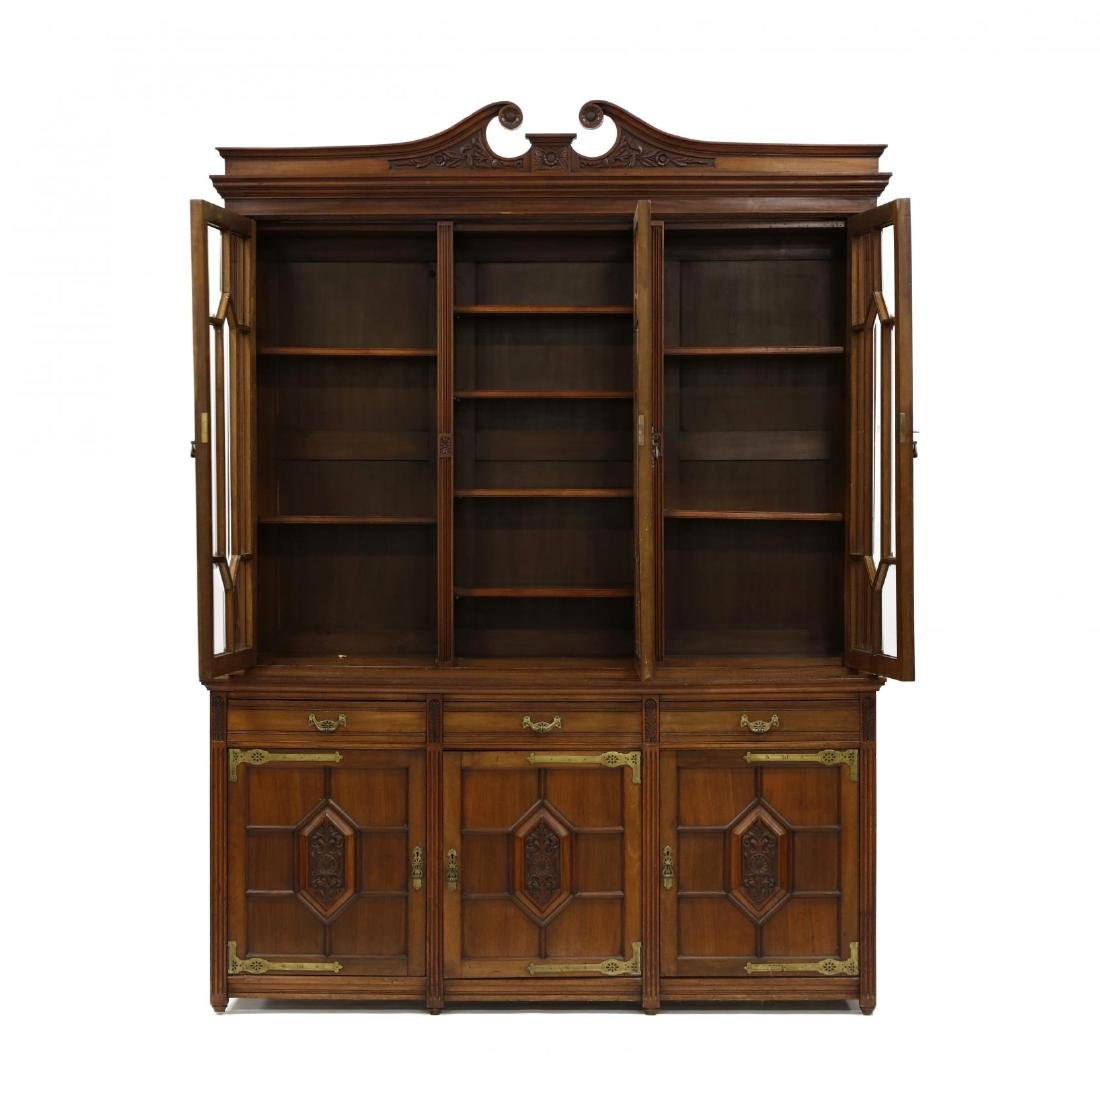 Aesthetic Period Carved Mahogany Bibliothèque - 2